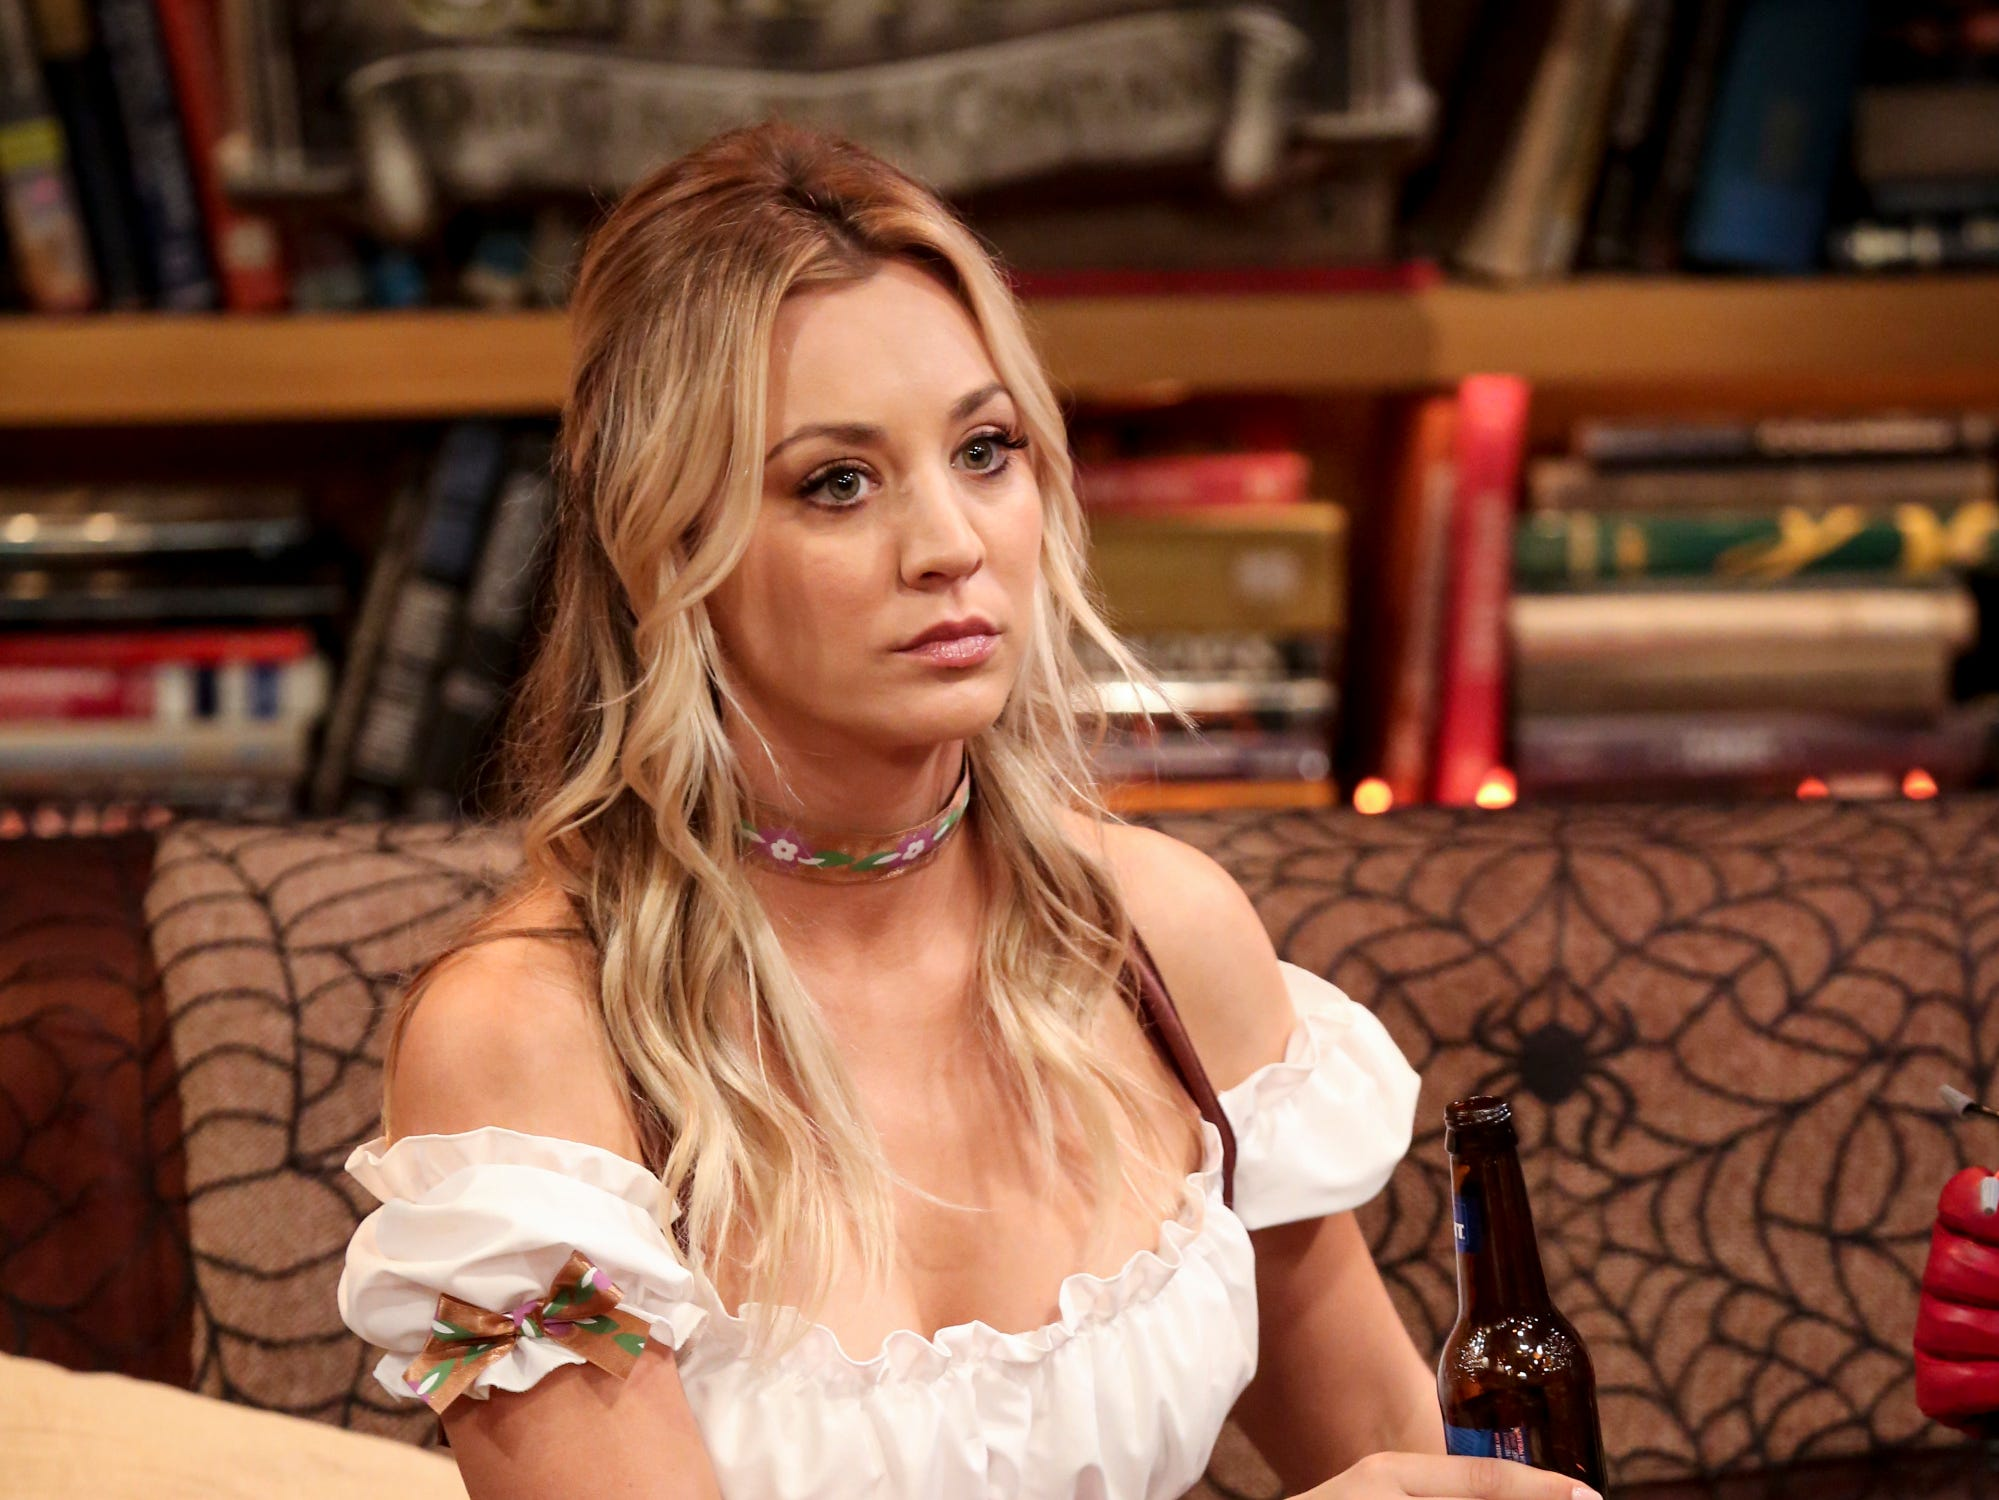 Penny (Kaley Cuoco), on the other hand, decides to go for a non-nerdy costume this season.